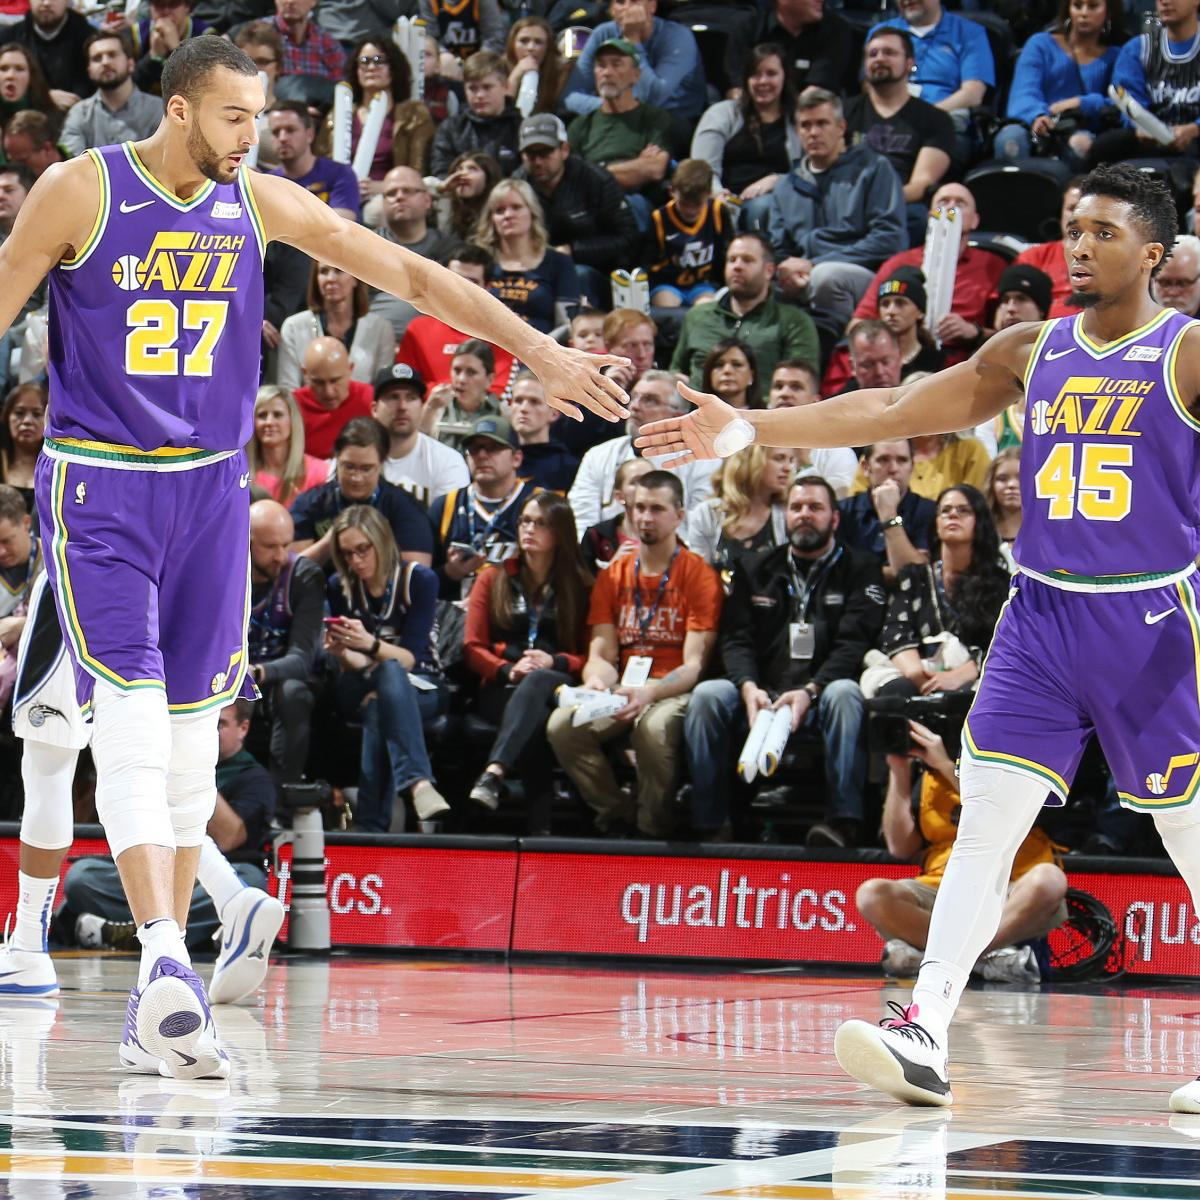 Jazz Clinch 2019 NBA Playoffs After Kings Lose To Pelicans